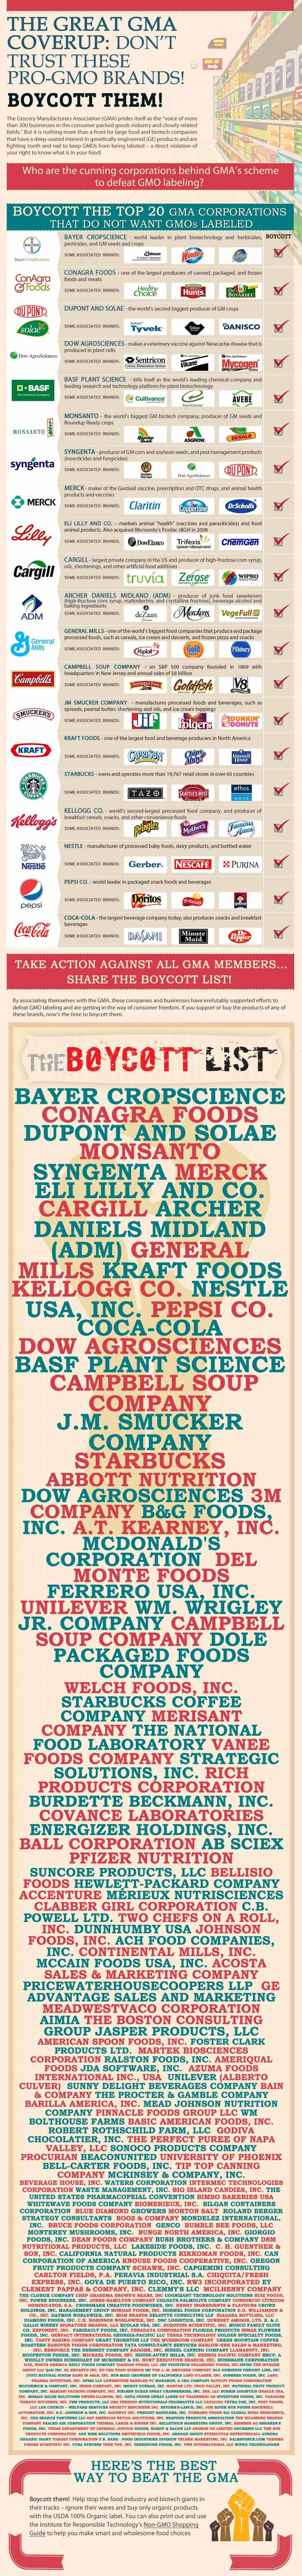 These pro-GMO brands hiding behind the Grocery Manufacturers Association (GMA) will do everything they can to keep GMOs in our food supply - boycott them now!